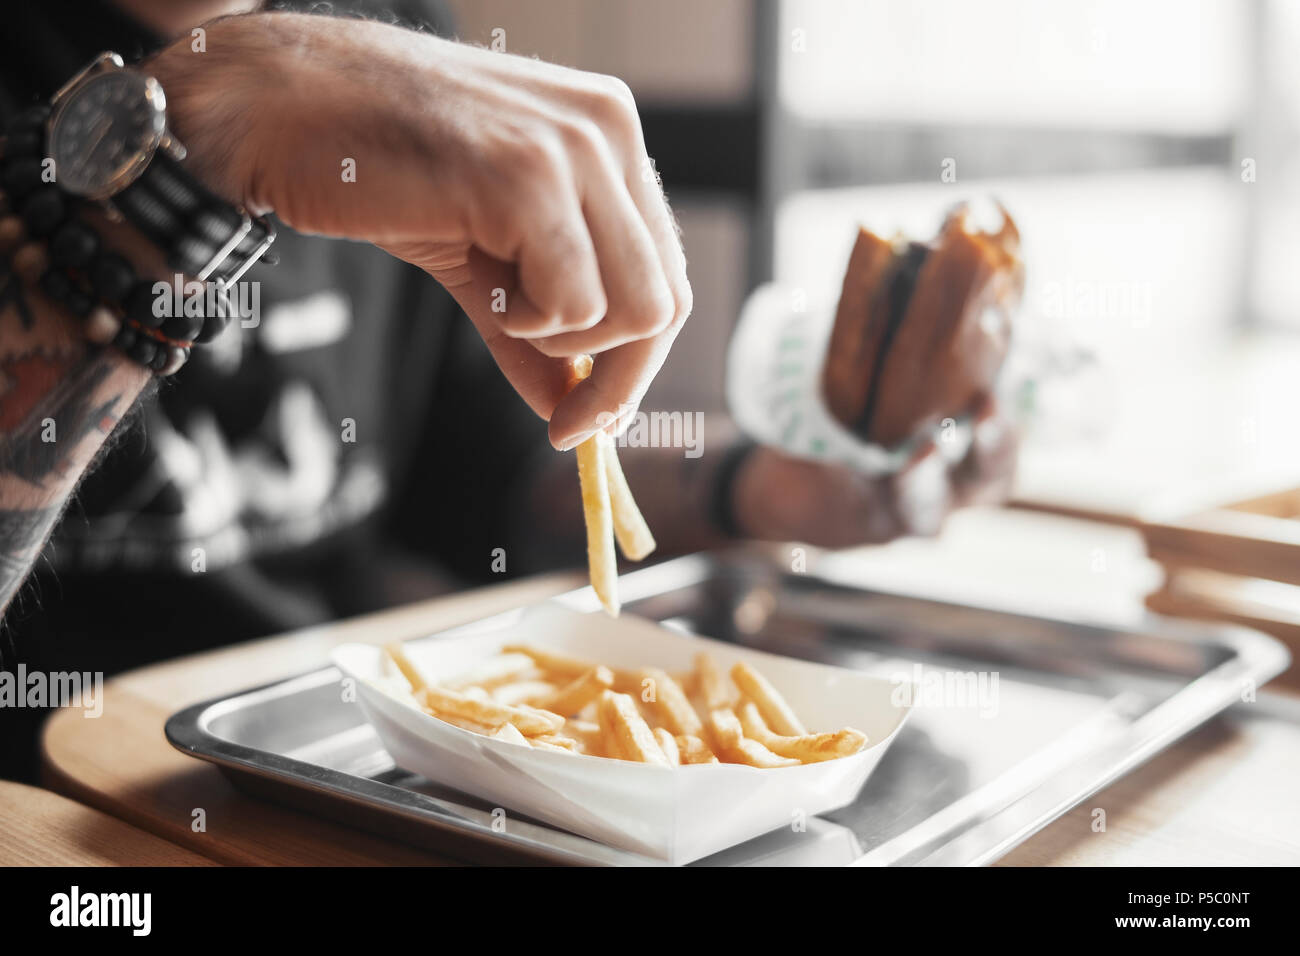 Young bearded man eating burger and french fries close up. - Stock Image